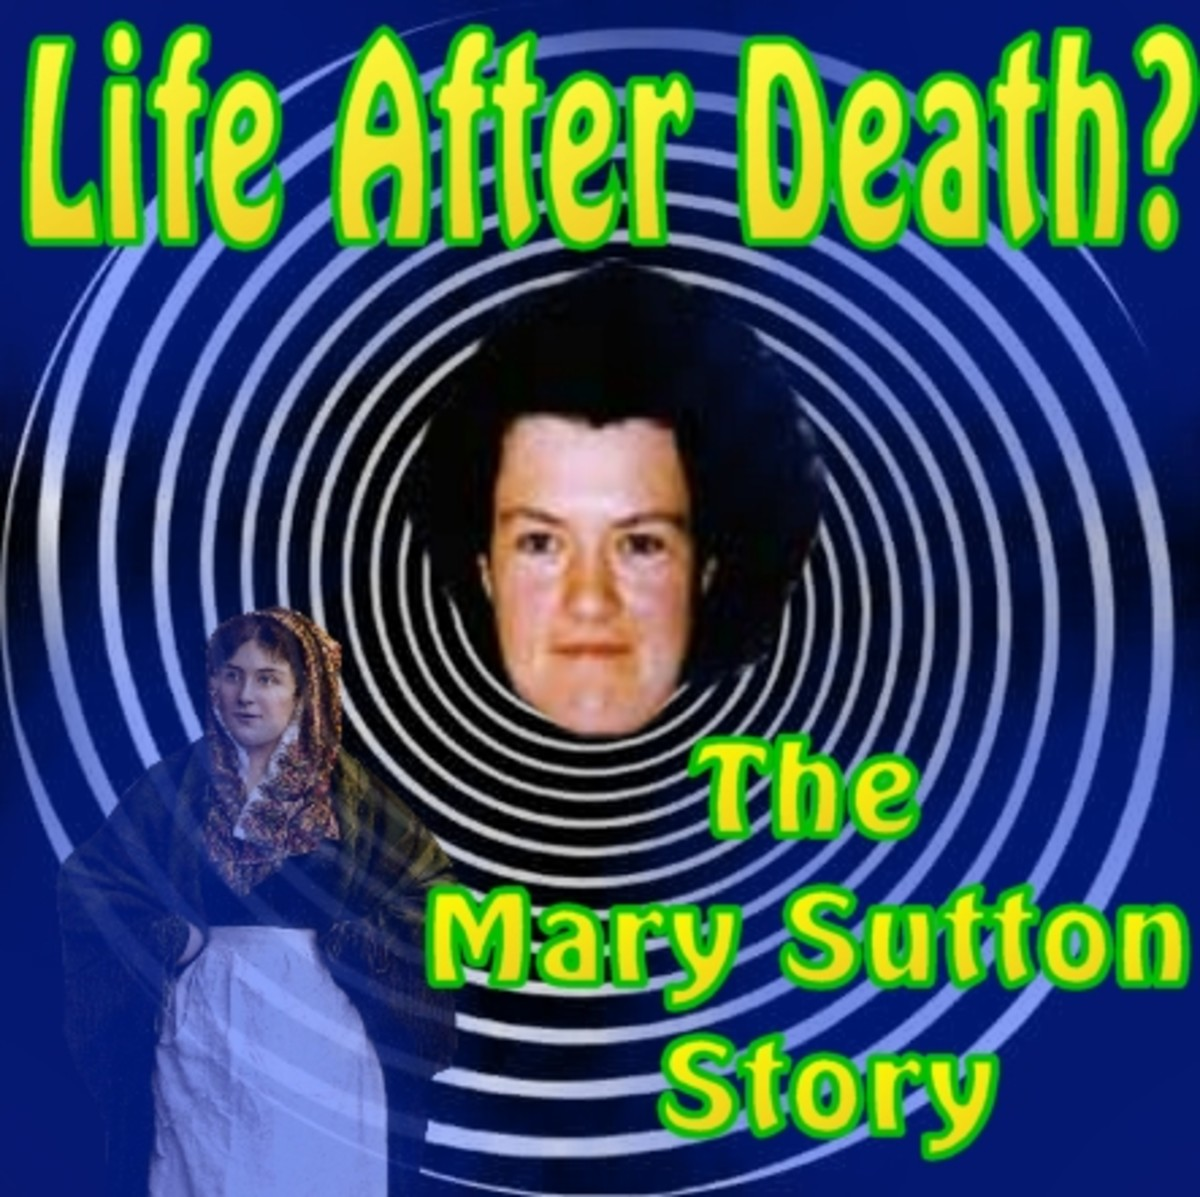 Life after death? The Mary Sutton reincarnation : Mystery Files